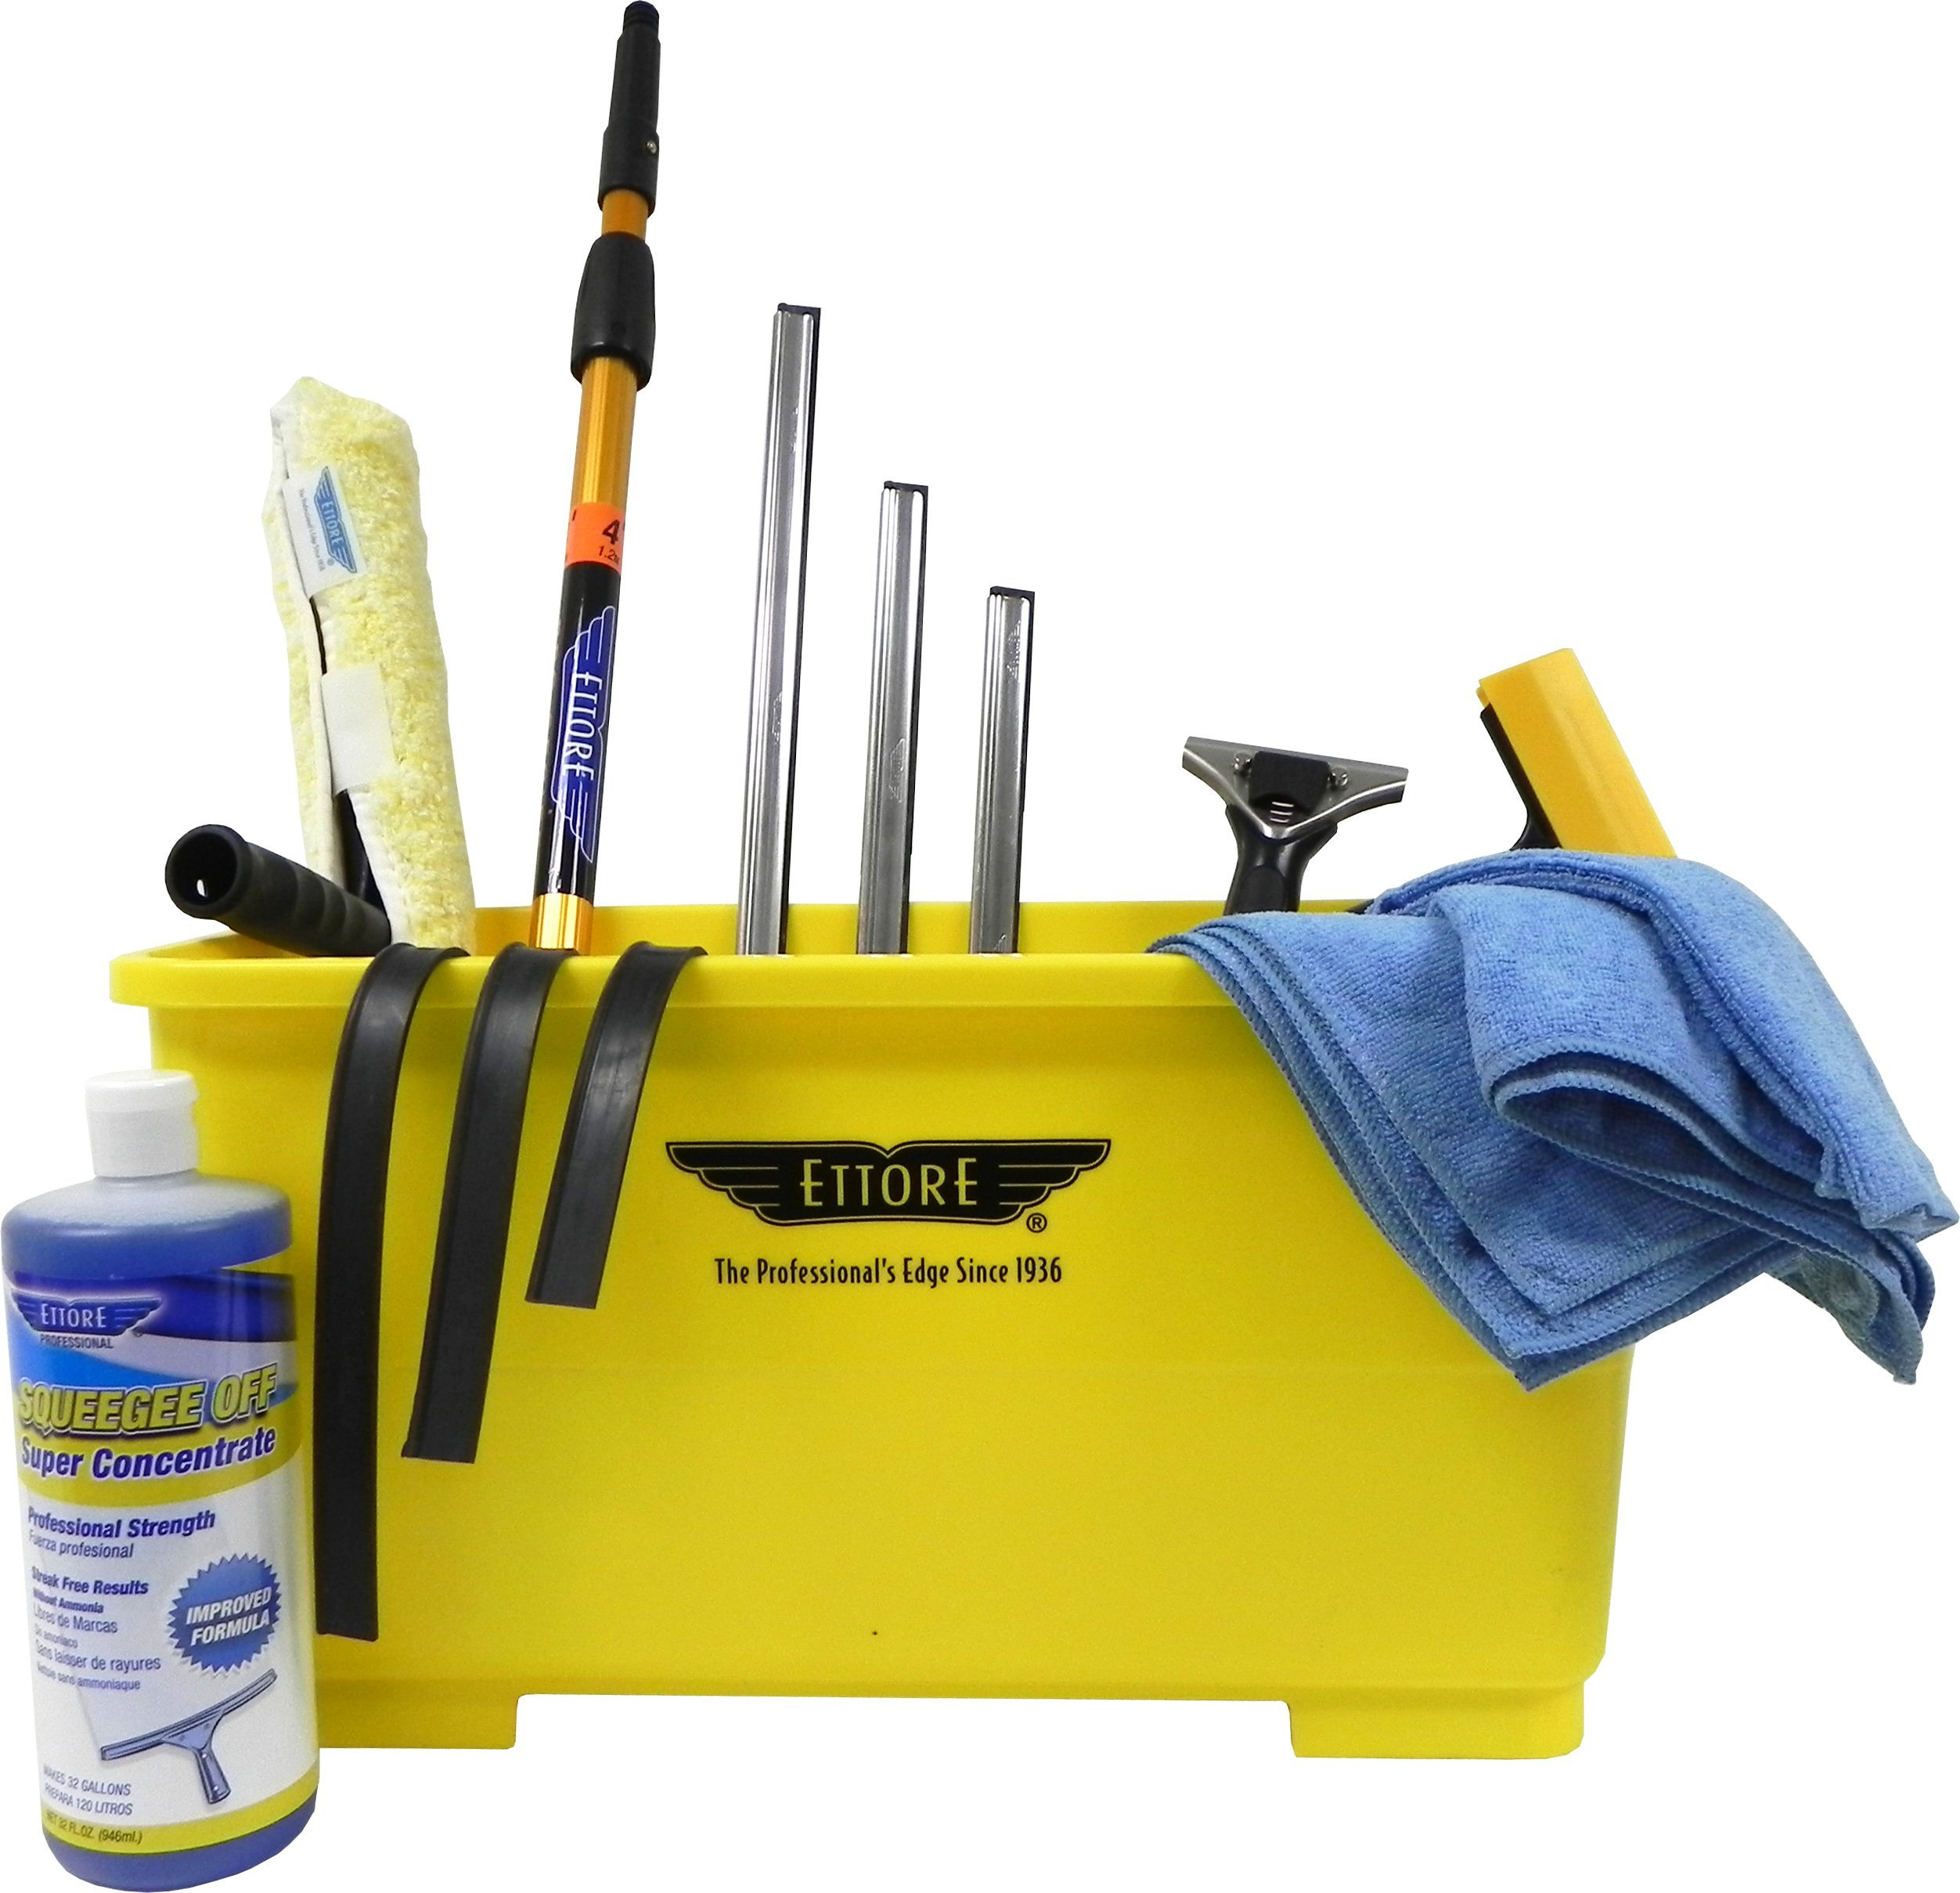 Ettore Professional Window Cleaning Kit with 8' Extension Pole